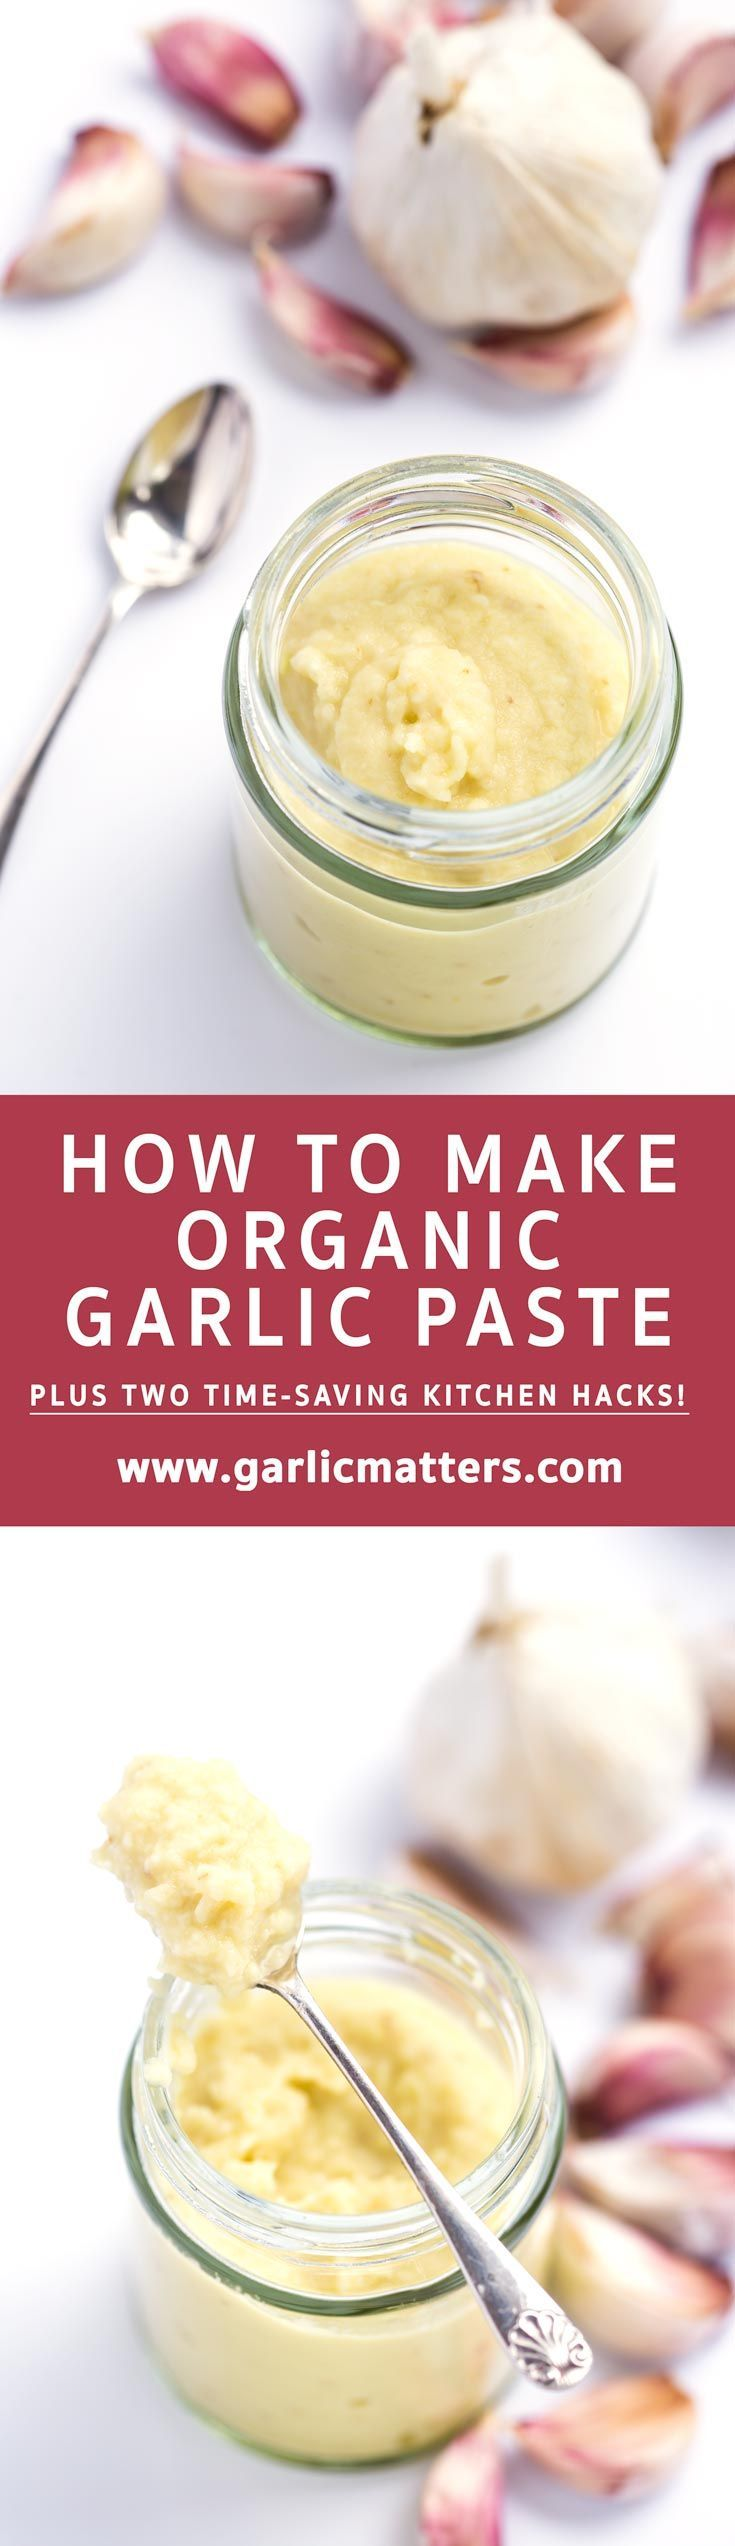 Learn how easy it is to make your own, organic garlic paste for cooking and save time and hassle with a useful kitchen hack! There is enough prep involving peeling, slicing, grating and chopping we…